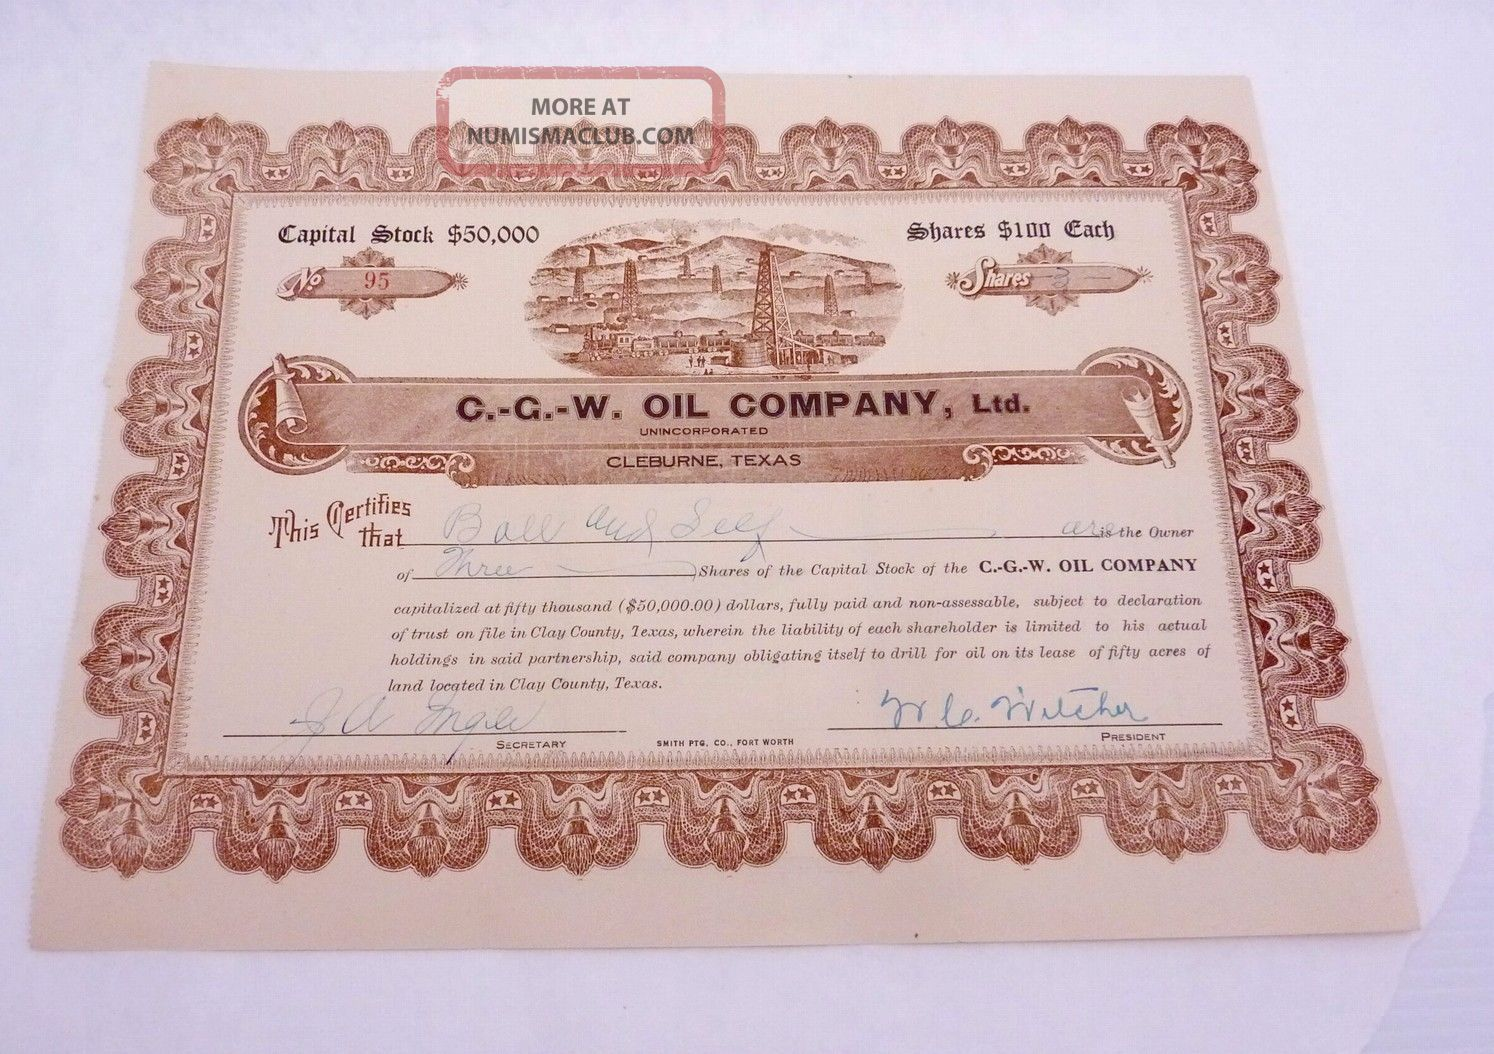 Antique 1918 Stock Certificate Cgw Oil Co Cleburne Texas Oil Well Railroad 22996 Stocks & Bonds, Scripophily photo